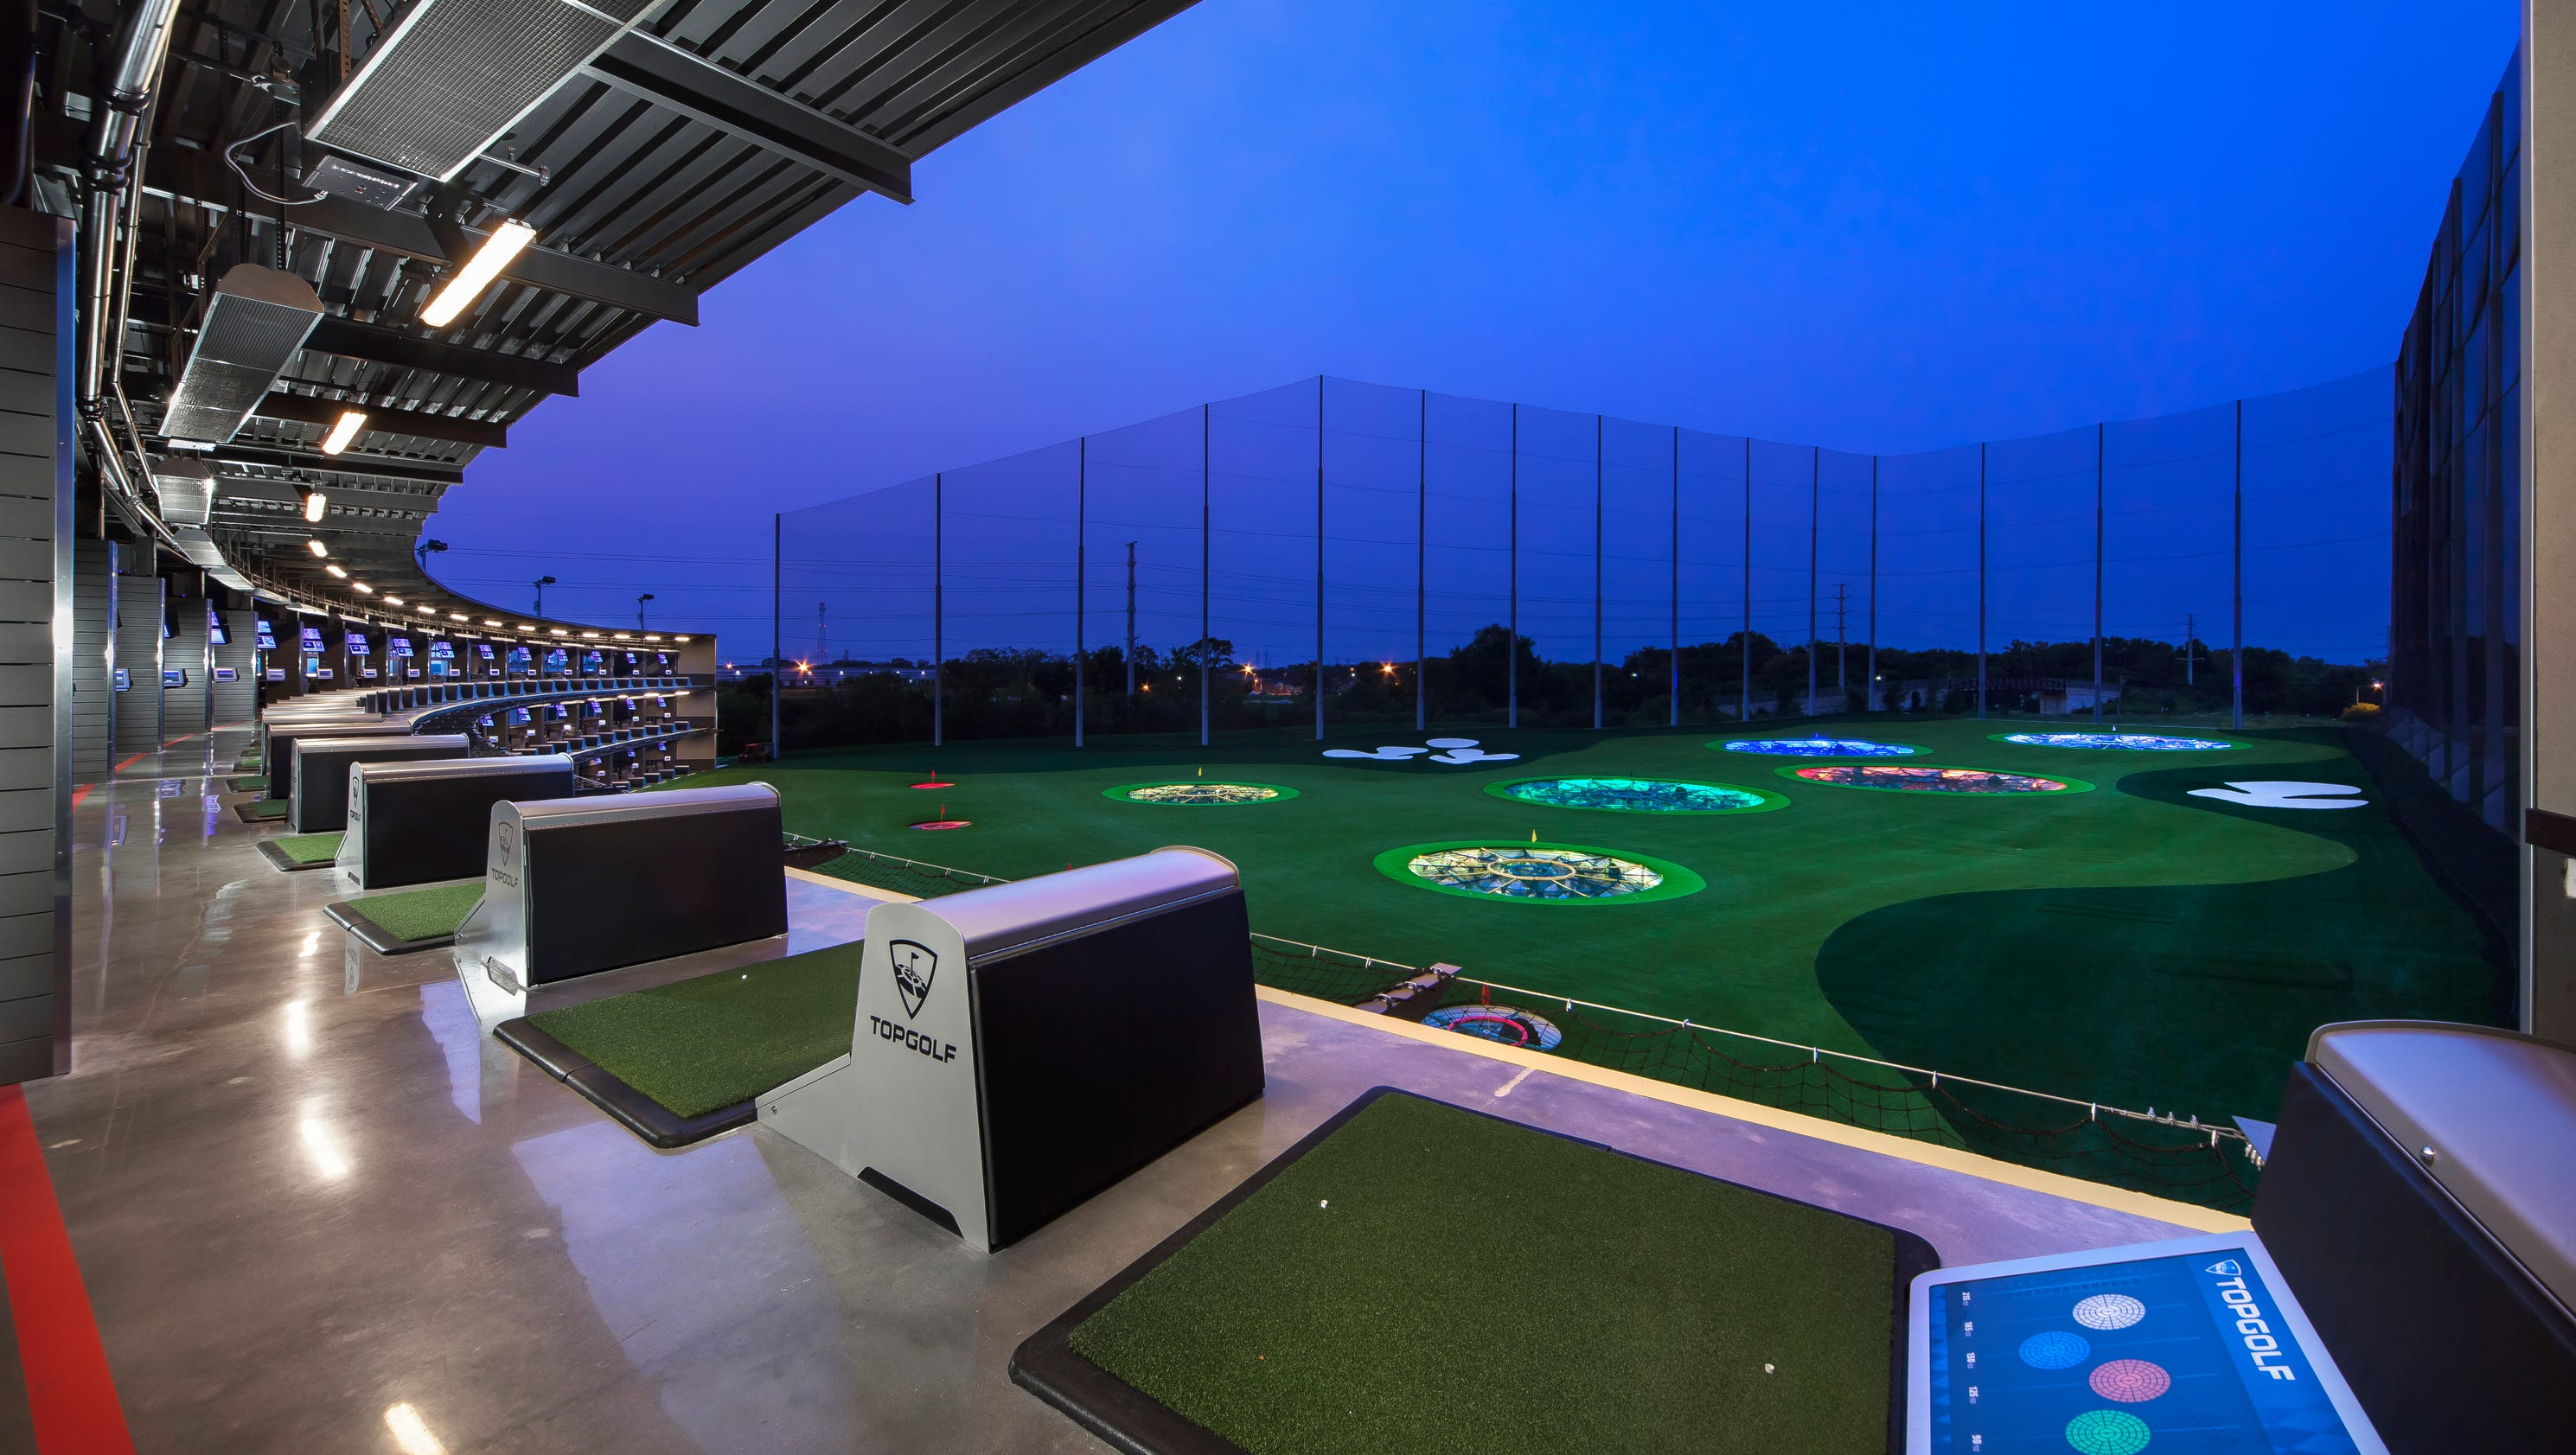 k Followers, 3, Following, 1, Posts - See Instagram photos and videos from Topgolf (@topgolf).